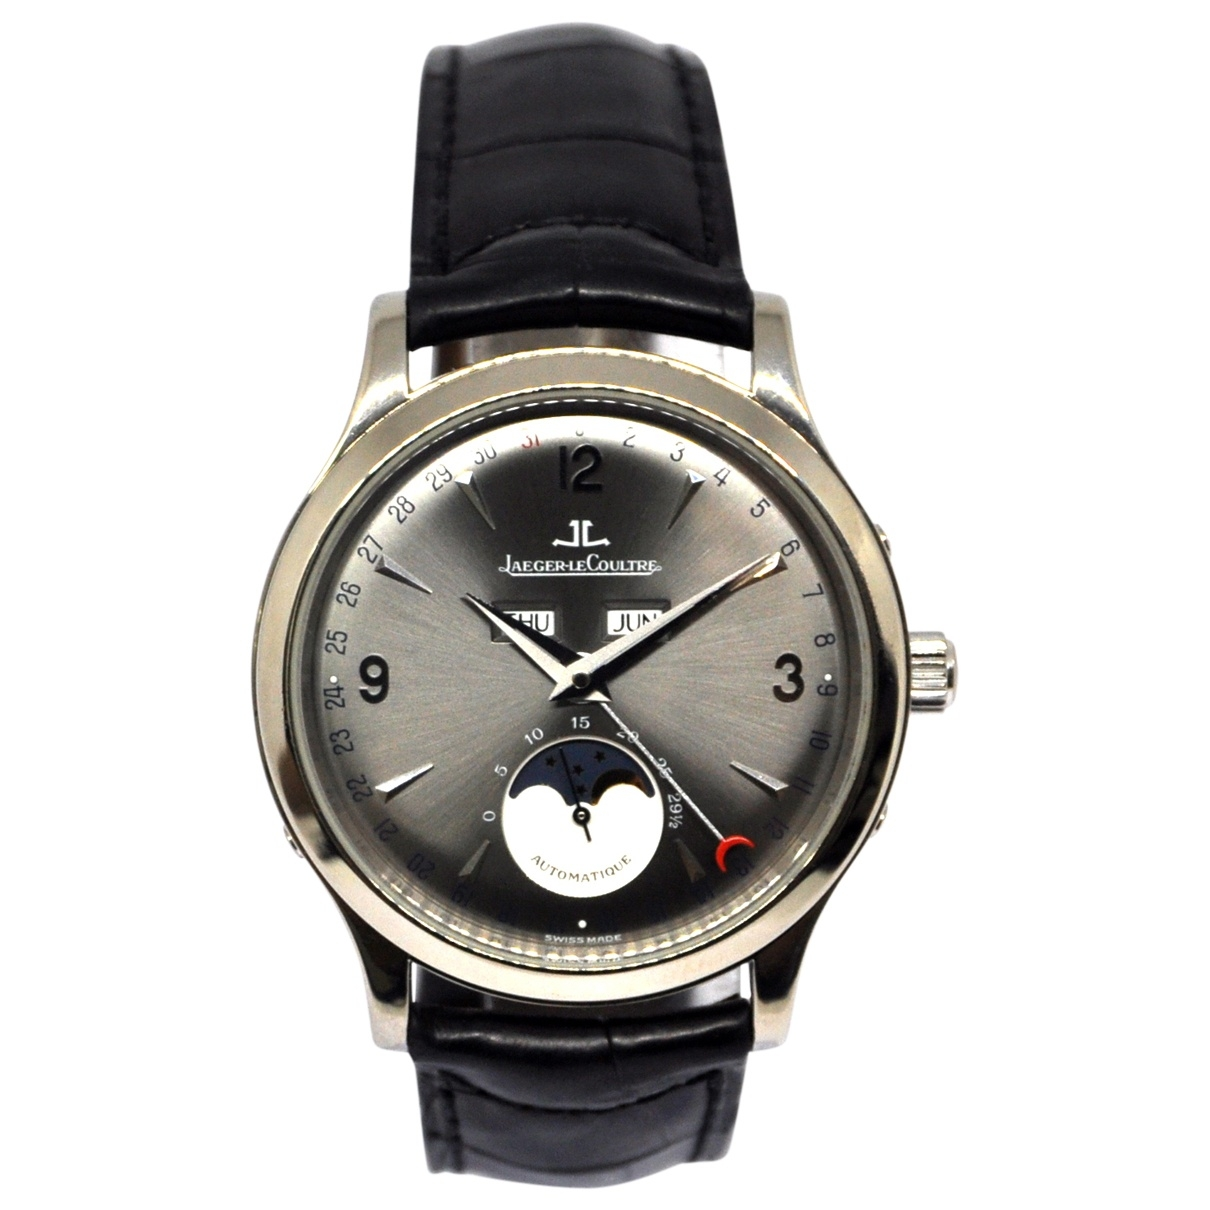 Jaeger-lecoultre Master Control  Uhr in Weissgold